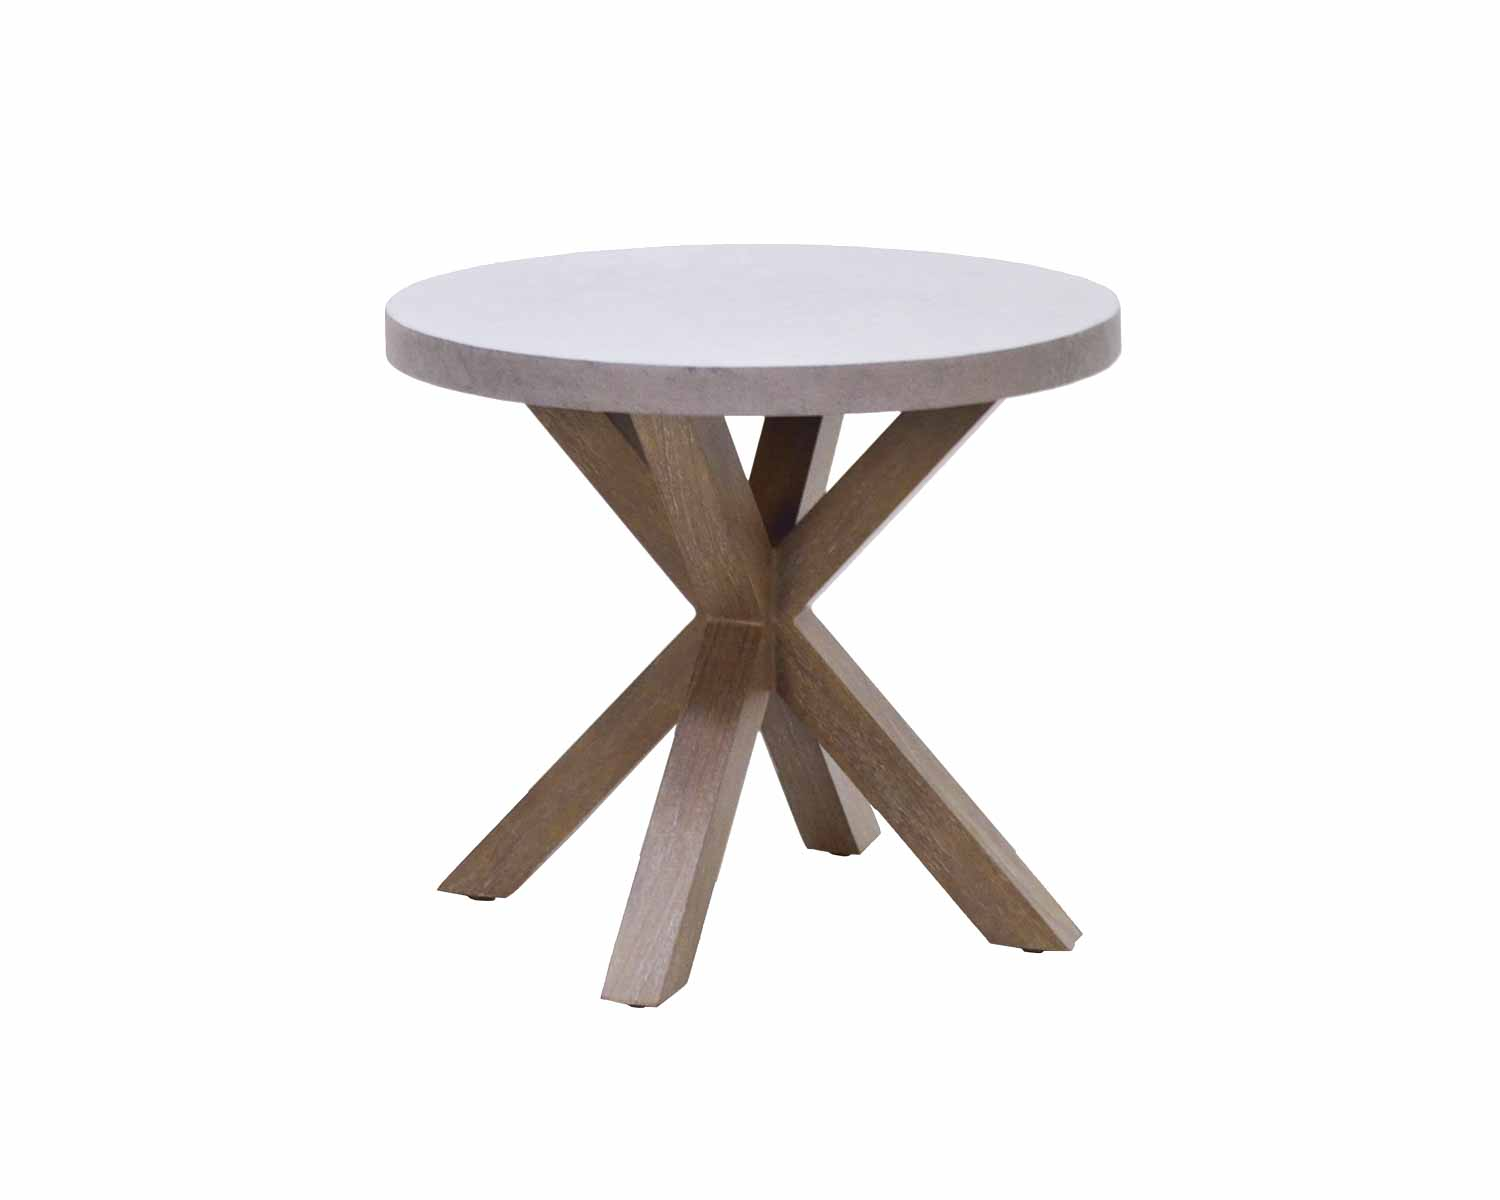 "CLR-24R 24"" Round End Table   24"" dia x 21"""